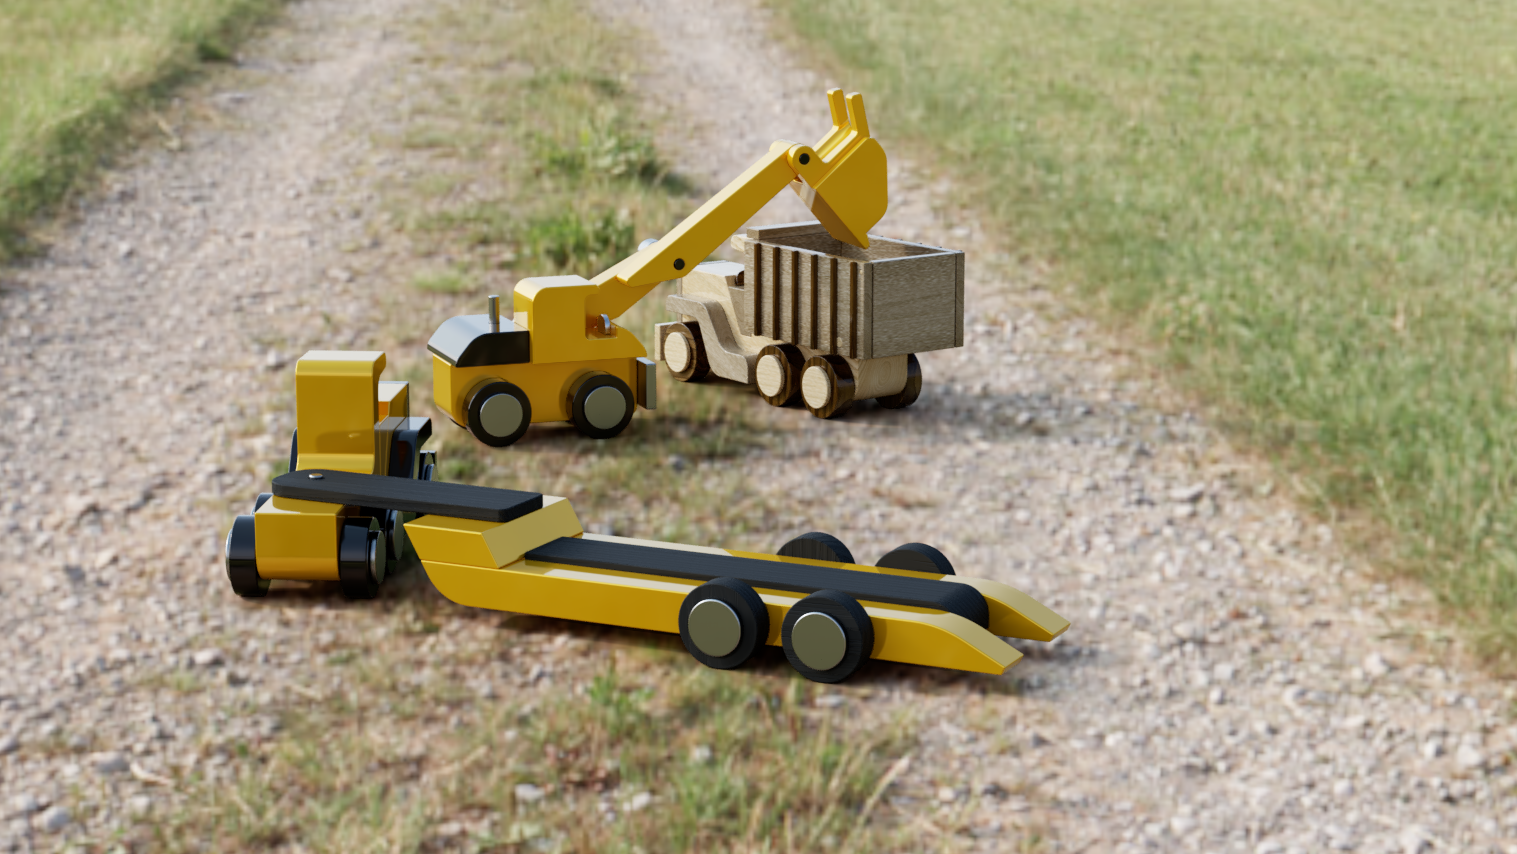 007 Wood Toy Power Shovel 05-20-2019.png